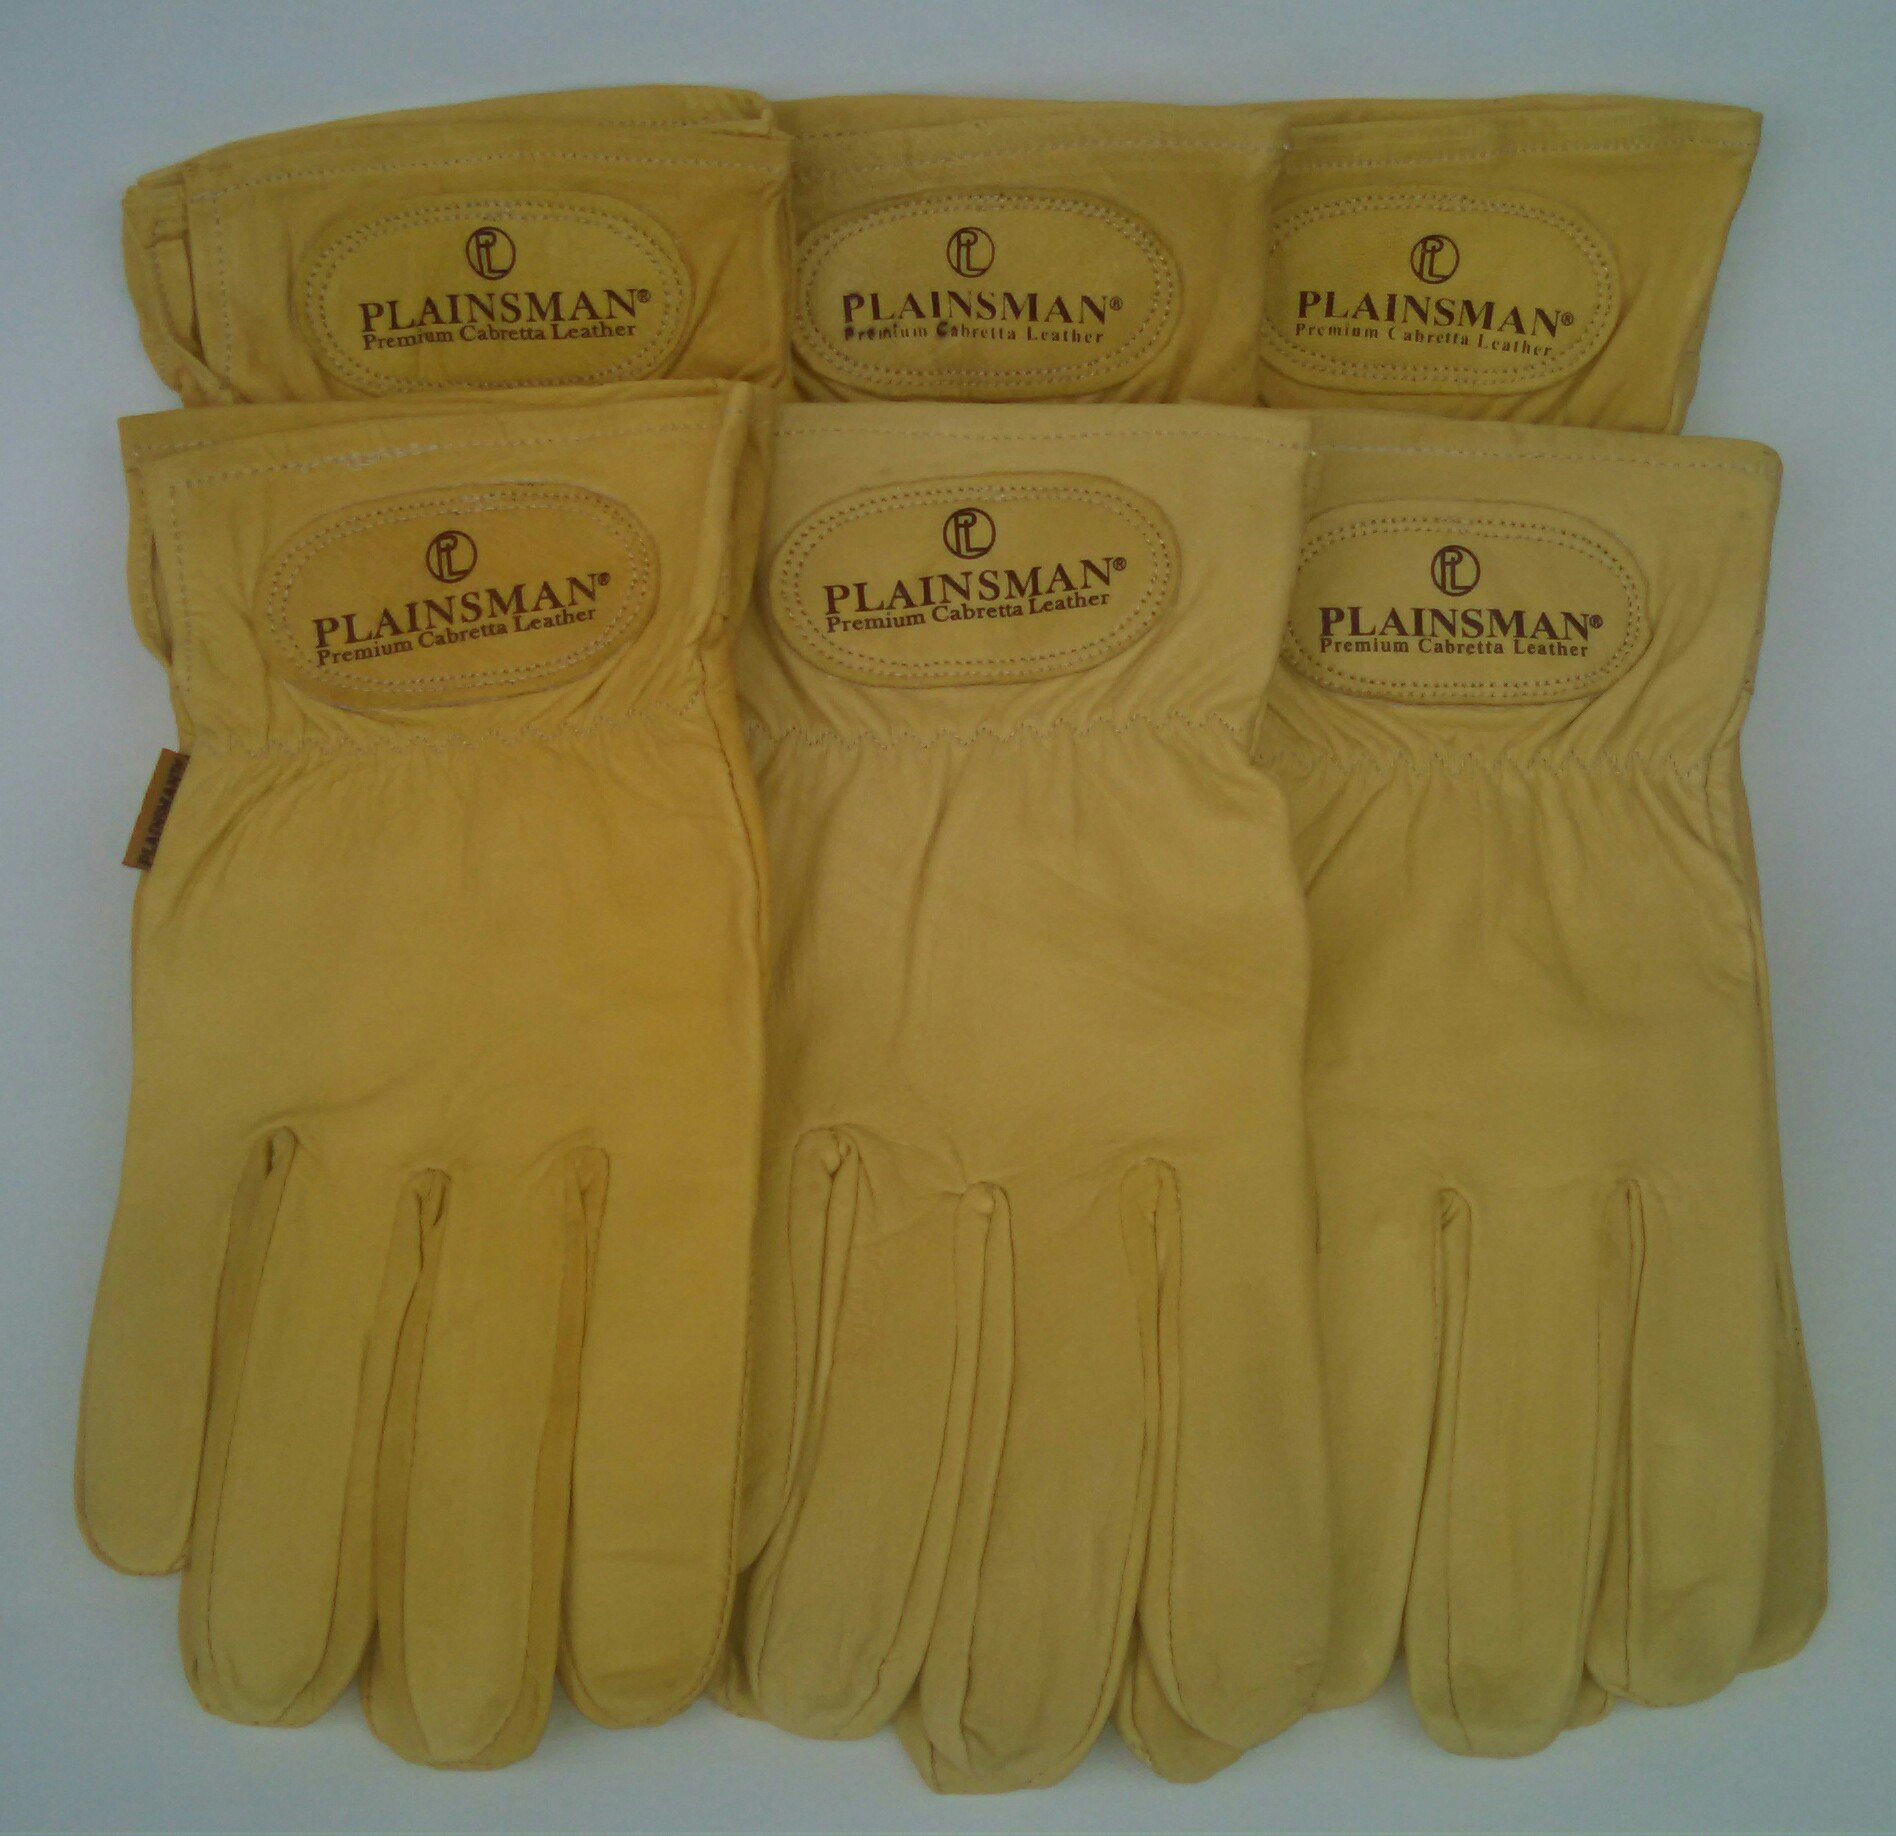 Plainsman Goatskin Cabretta Leather Gloves (6) Pairs Wholesale Bundle Medium by Plainsman (Image #1)